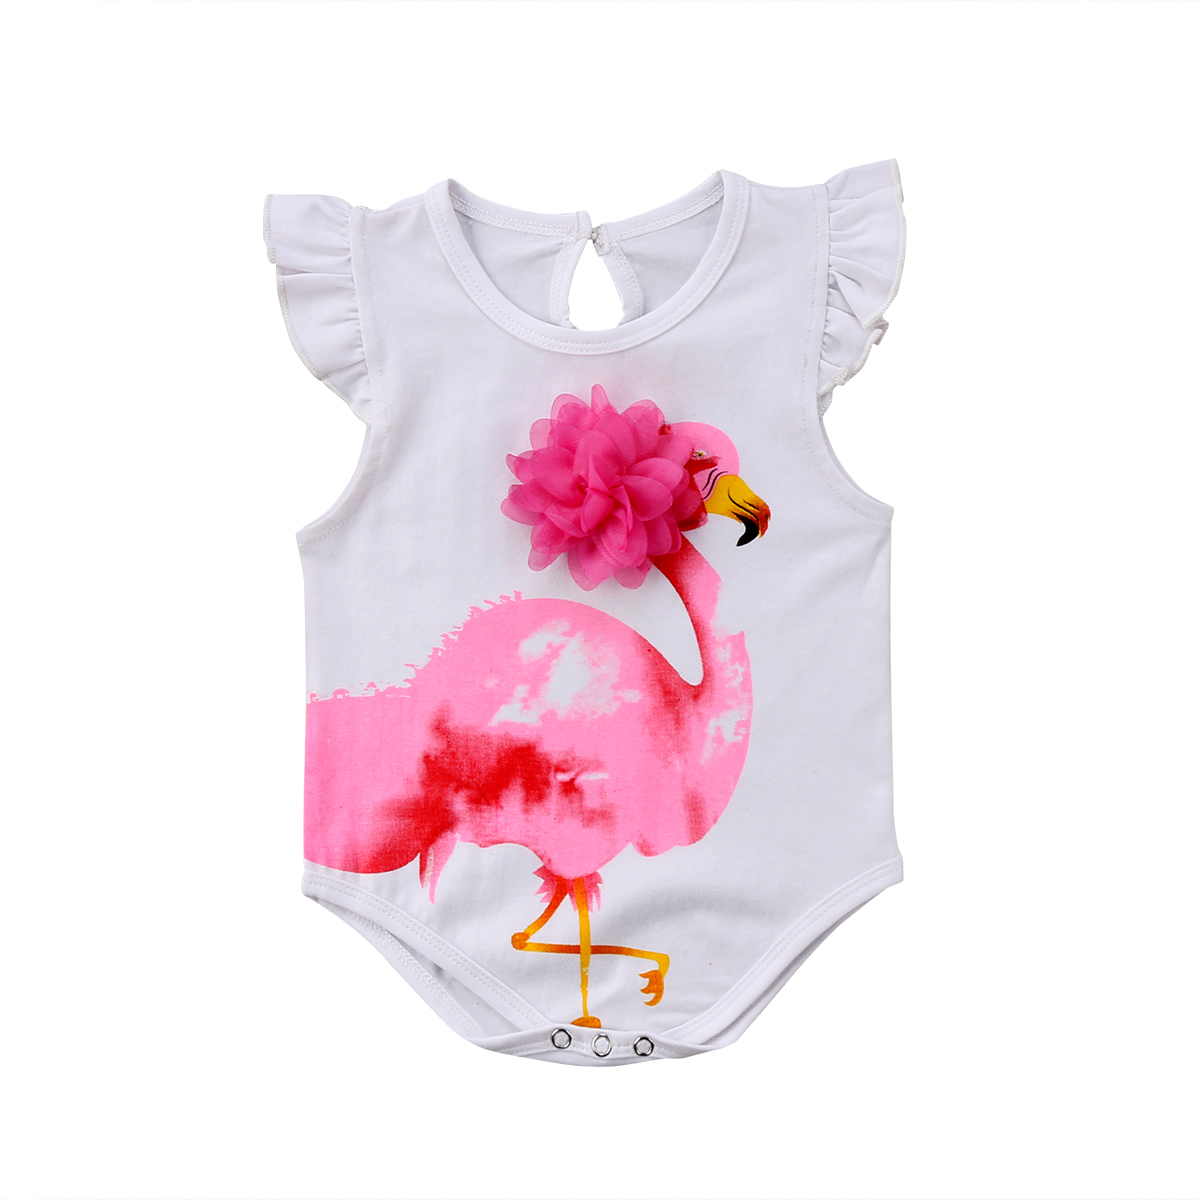 68820c9f160 Detail Feedback Questions about Fashion Newborn Infant Baby Girls Romper  Jumpsuit Clothes Outfits 3D Swan Cartoon Print Summer Cotton Sleeveless  Clothing on ...